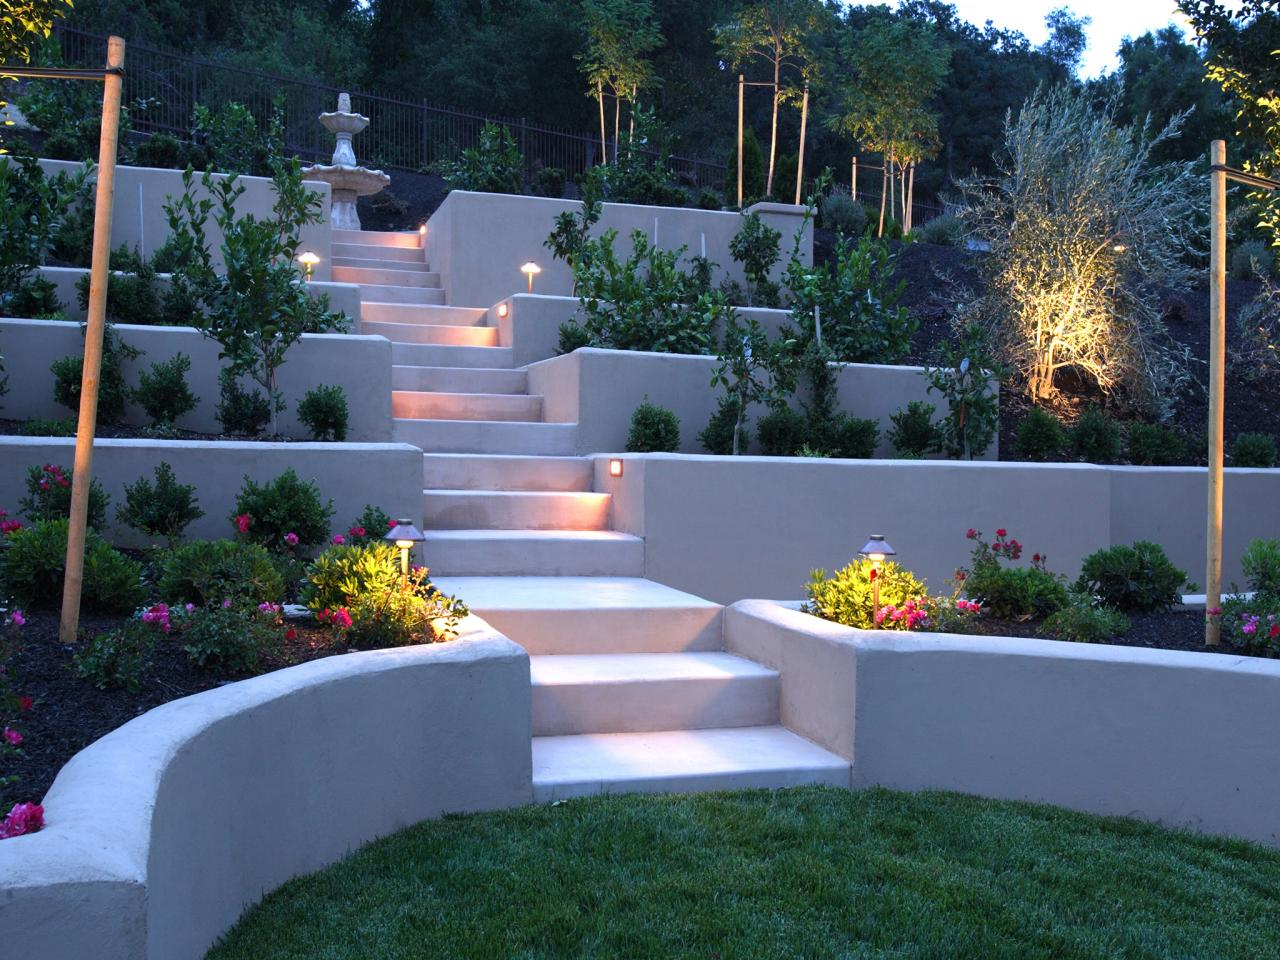 Hardscaping-Corpus Christi TX Landscape Designs & Outdoor Living Areas-We offer Landscape Design, Outdoor Patios & Pergolas, Outdoor Living Spaces, Stonescapes, Residential & Commercial Landscaping, Irrigation Installation & Repairs, Drainage Systems, Landscape Lighting, Outdoor Living Spaces, Tree Service, Lawn Service, and more.